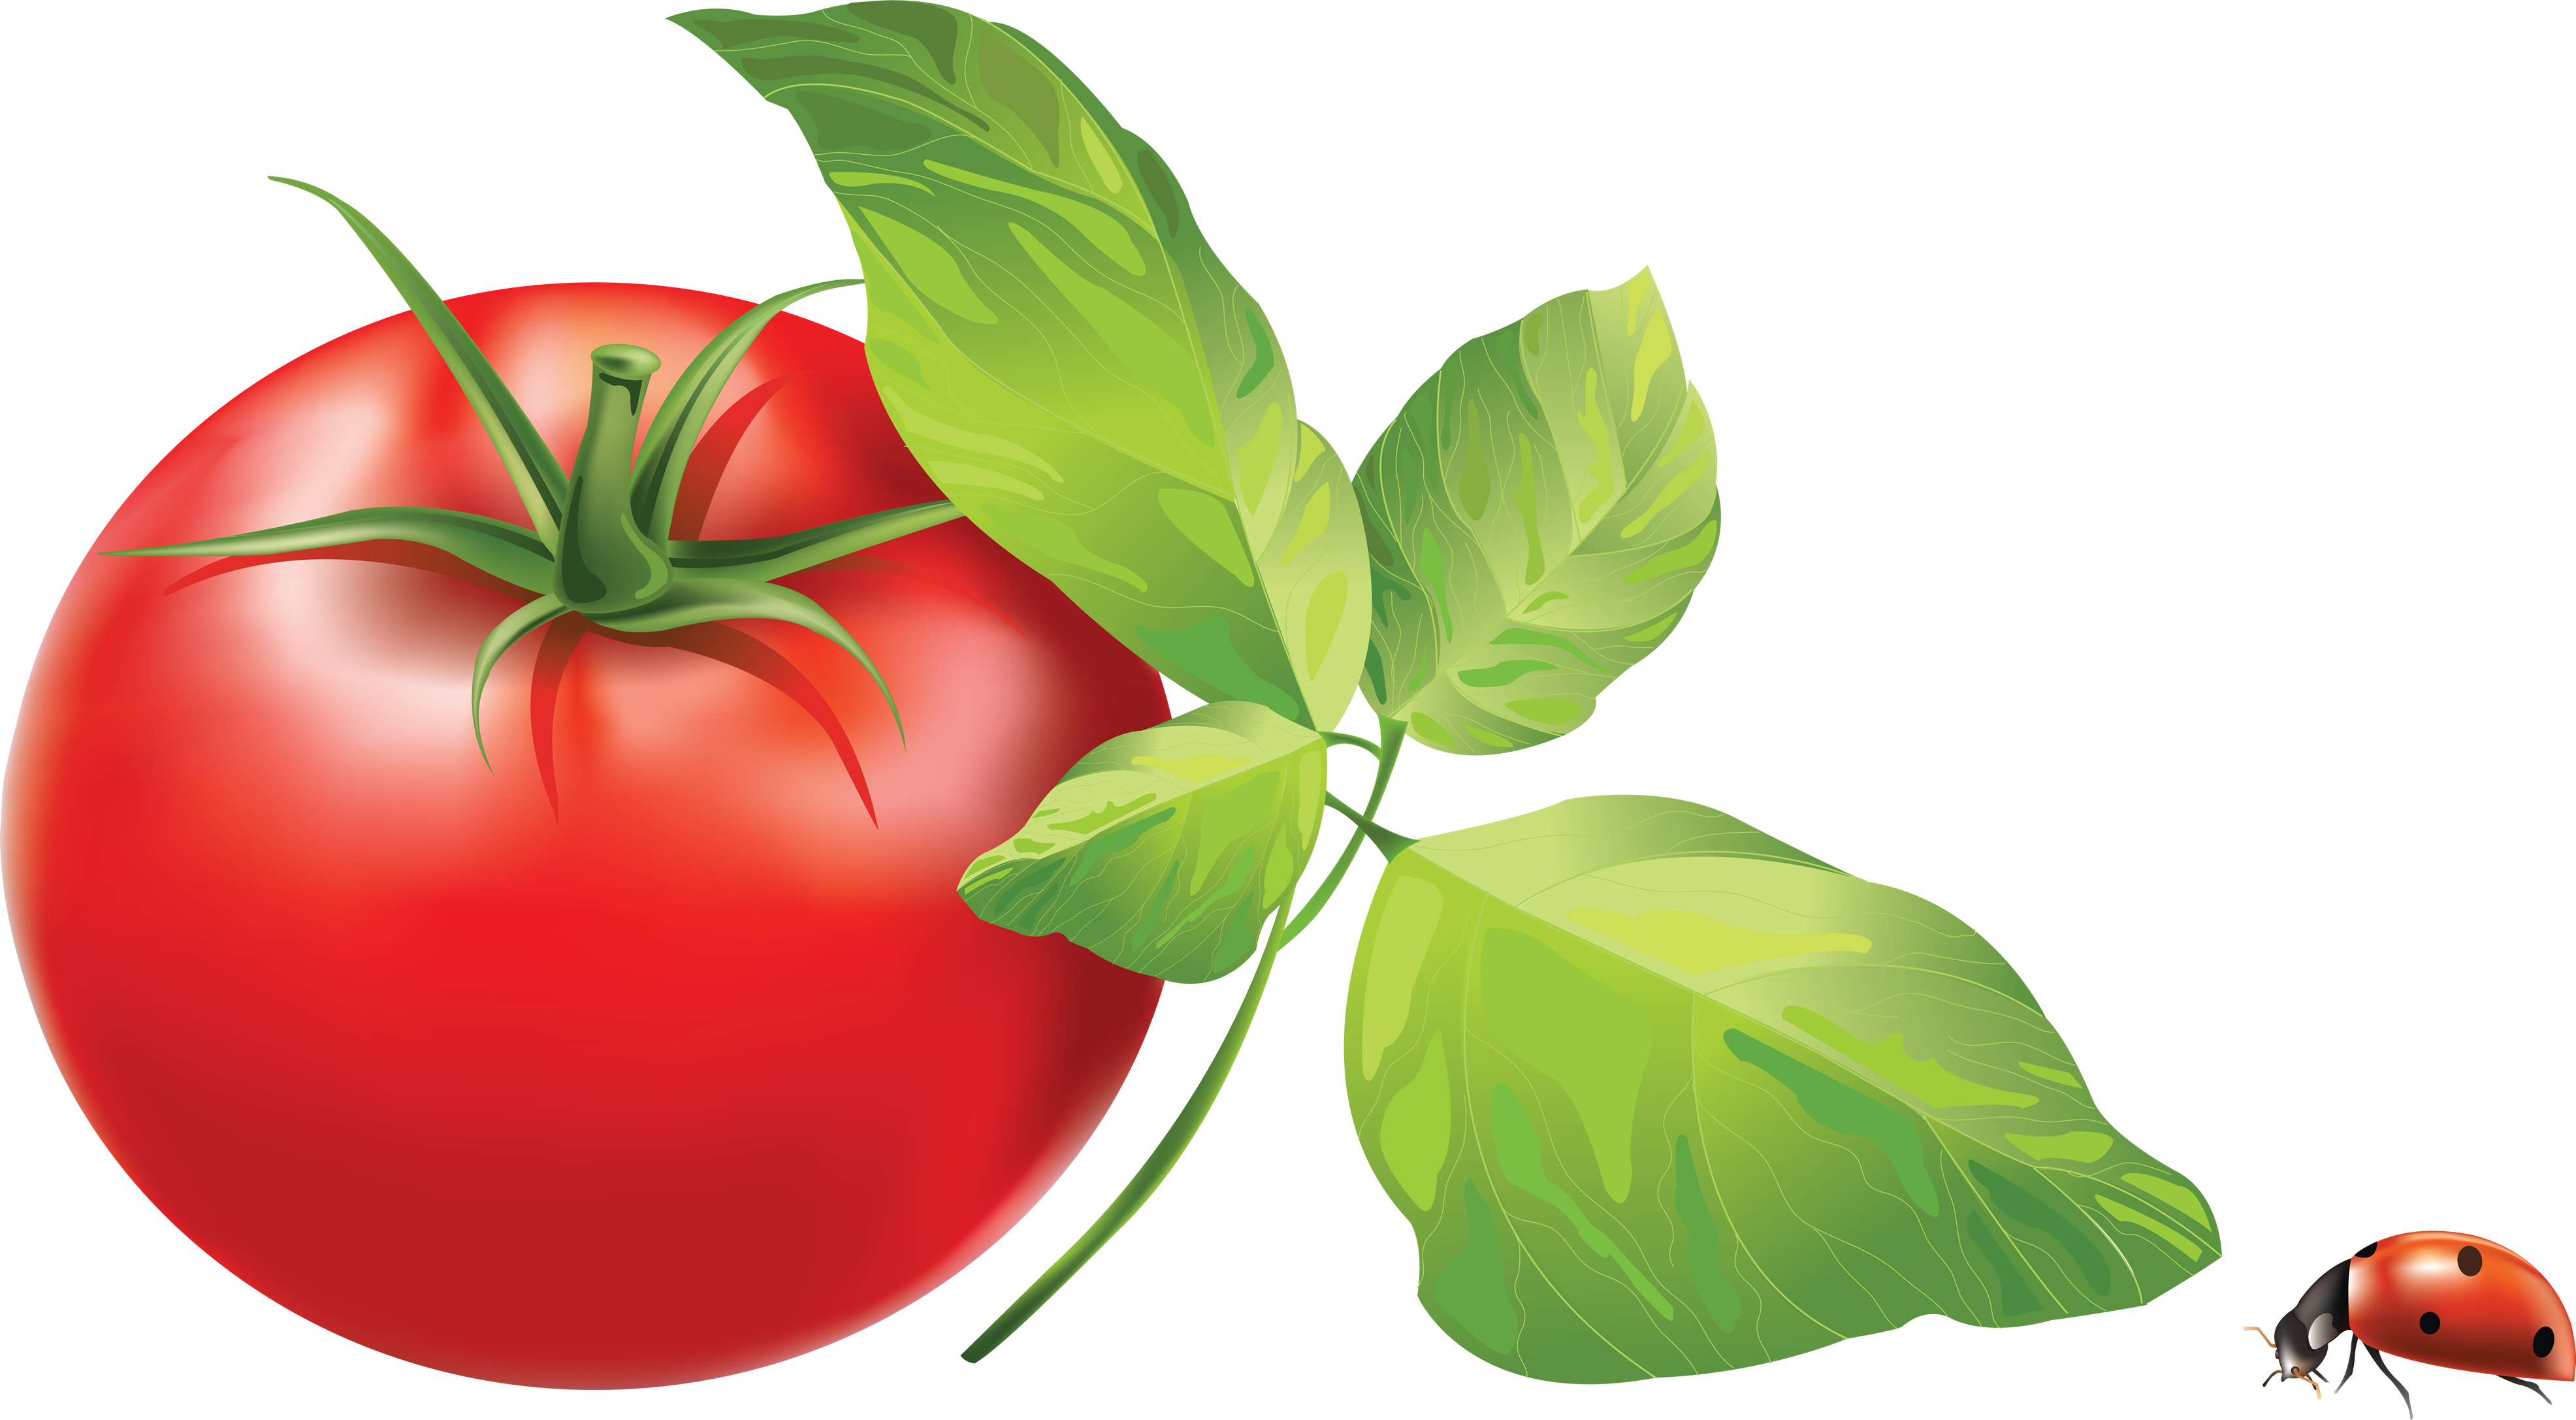 Tomato png image cliparts. Tomatoes clipart colour